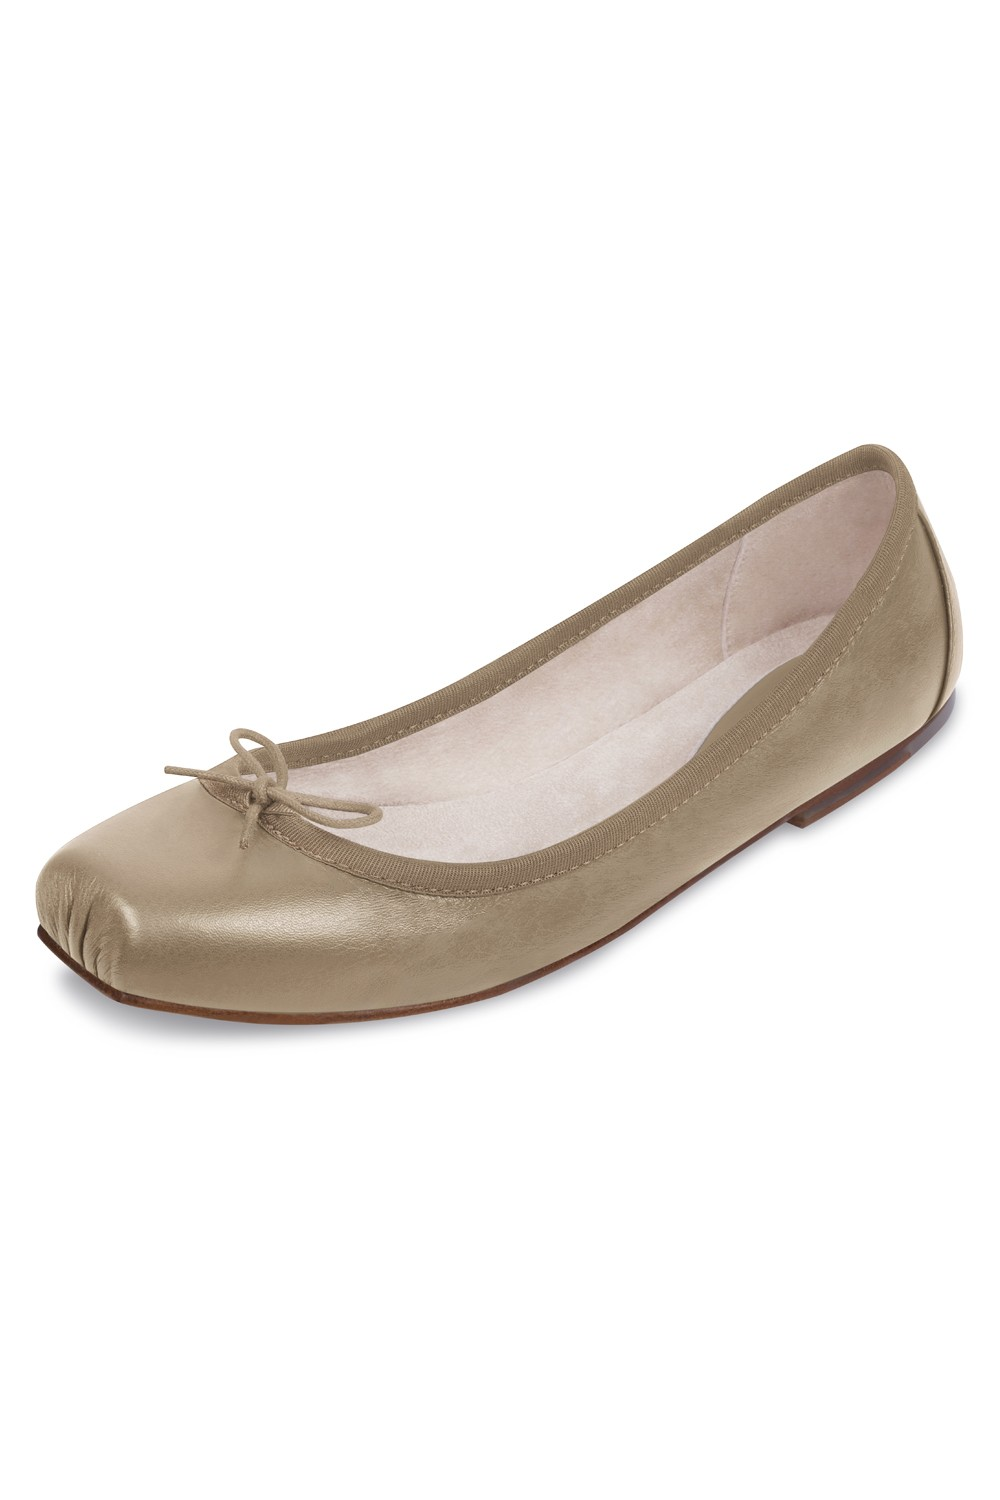 Ortensia Ballet Flats Womens Fashion Shoes